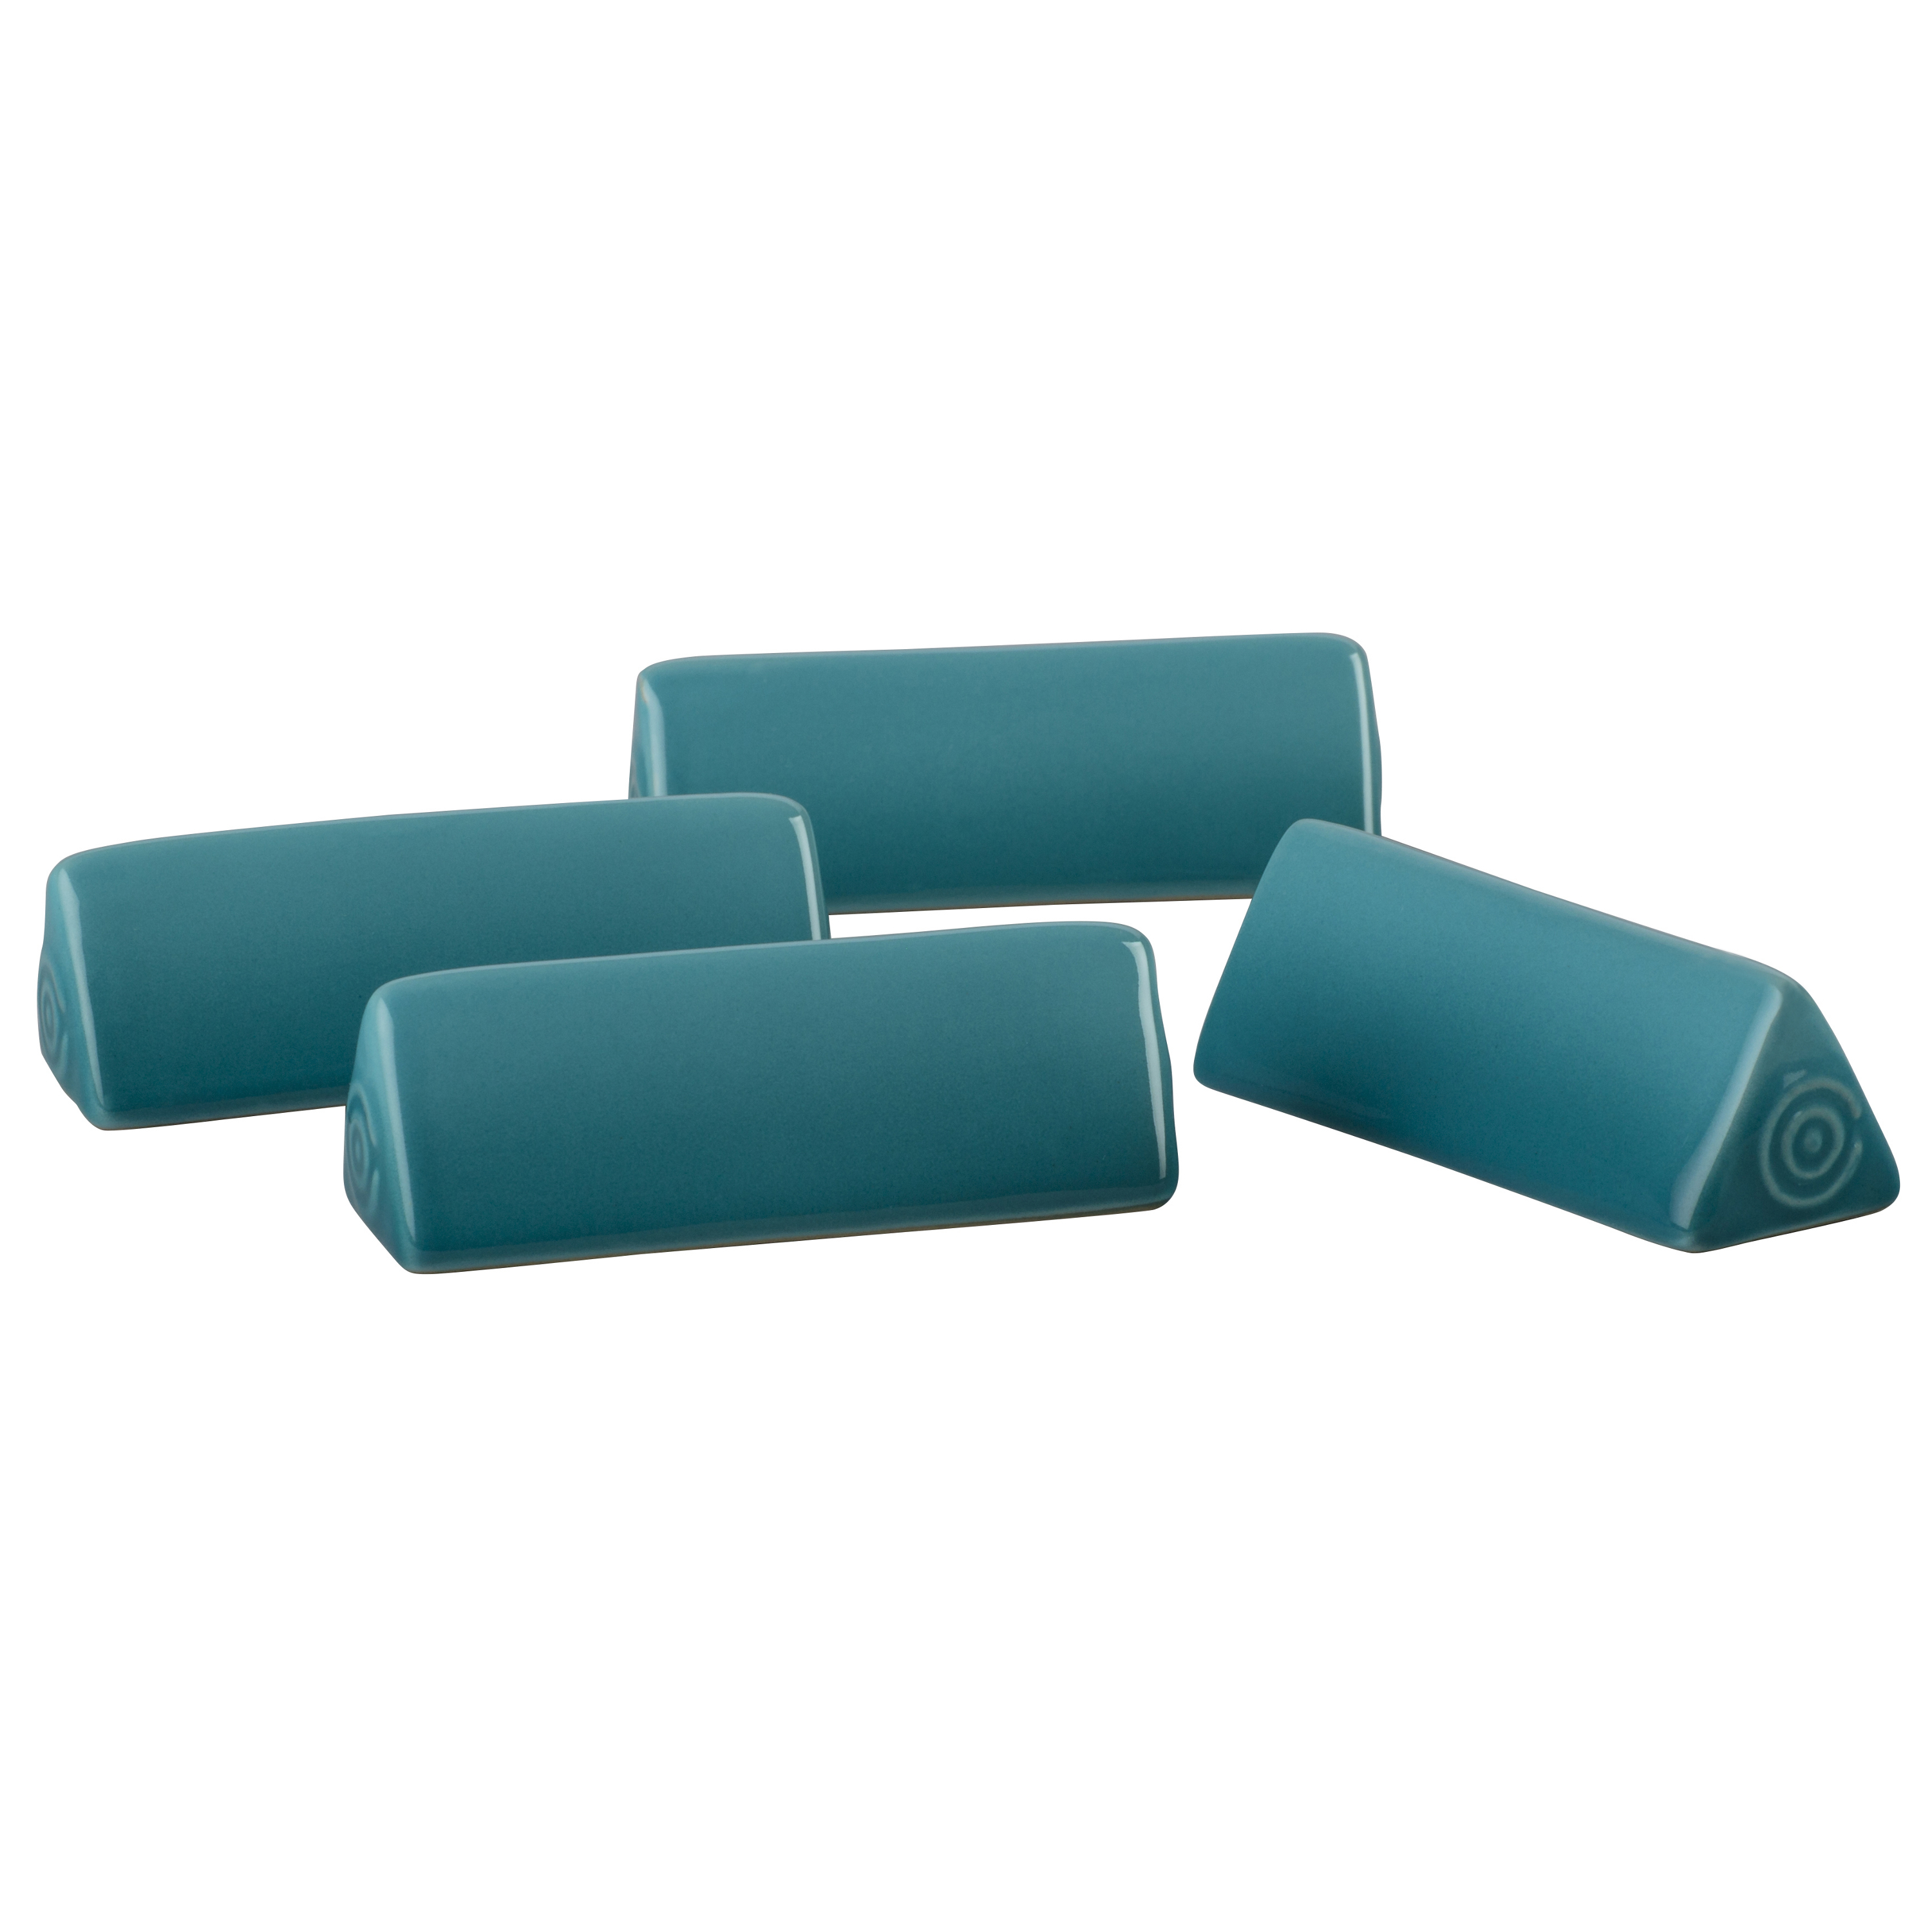 Le Creuset Caribbean Stoneware Cheese Marker, Set of 4